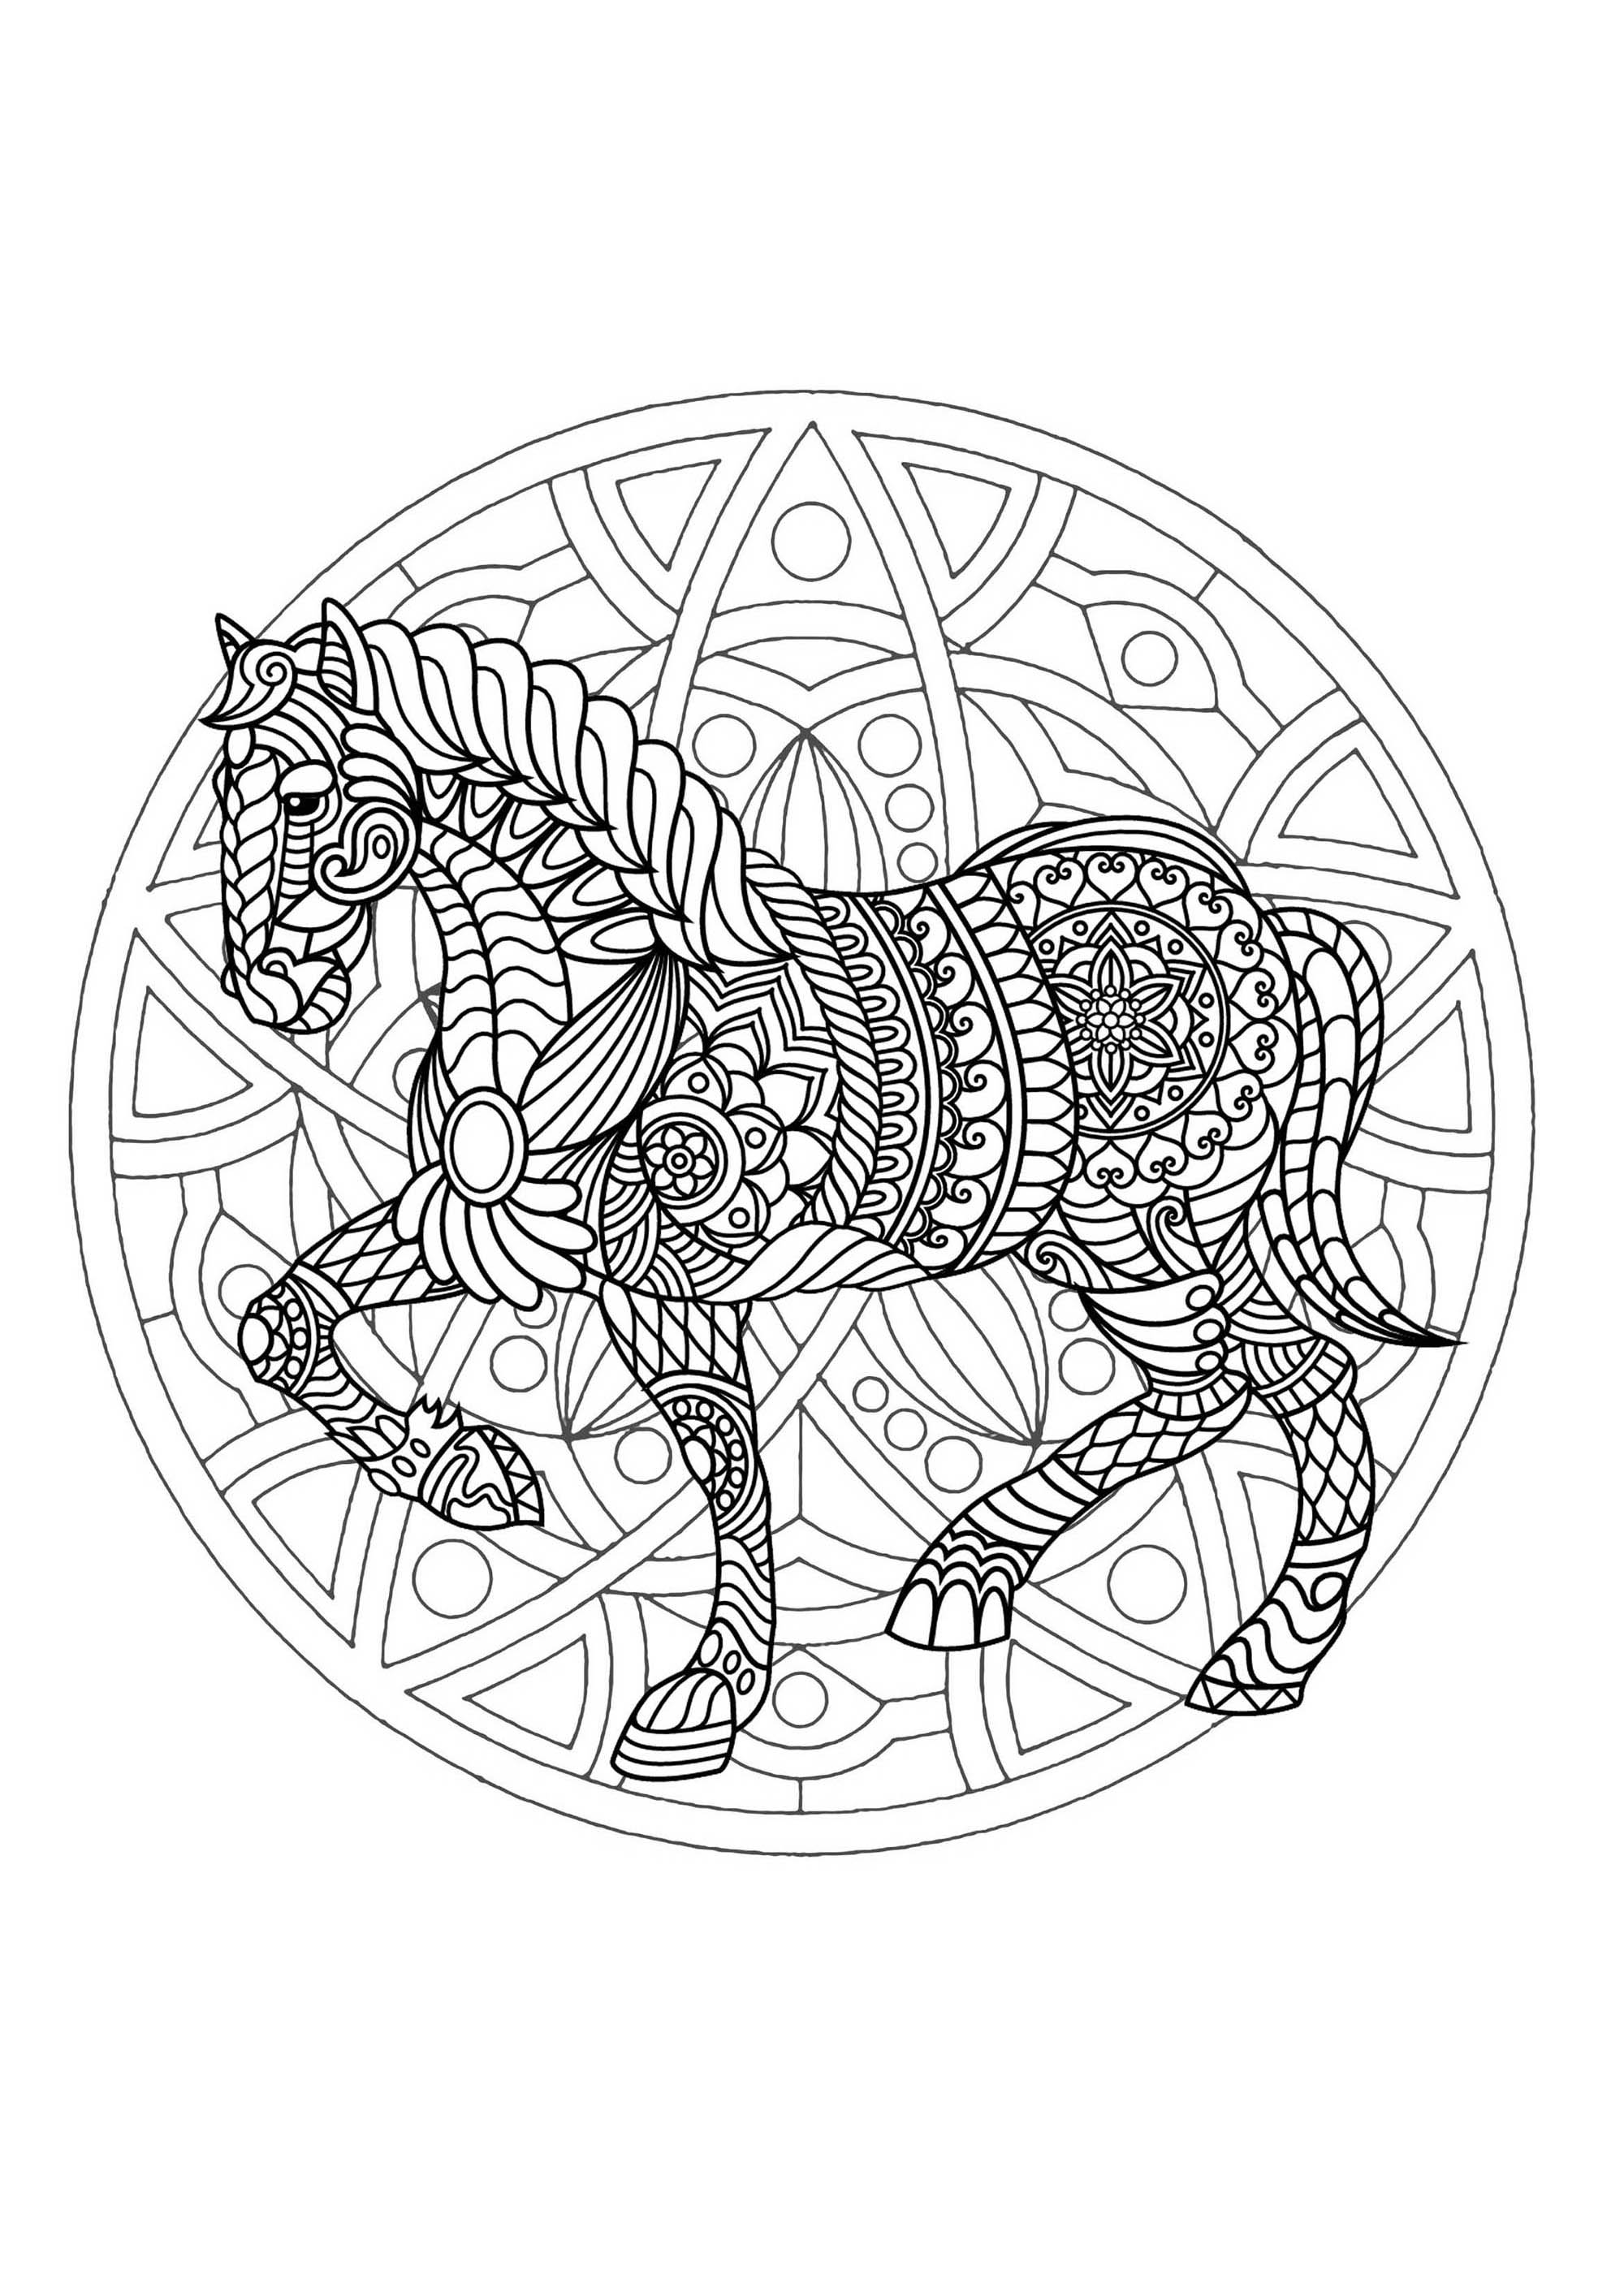 mandalas coloring pages color your stress away with mandala coloring pages skip pages mandalas coloring